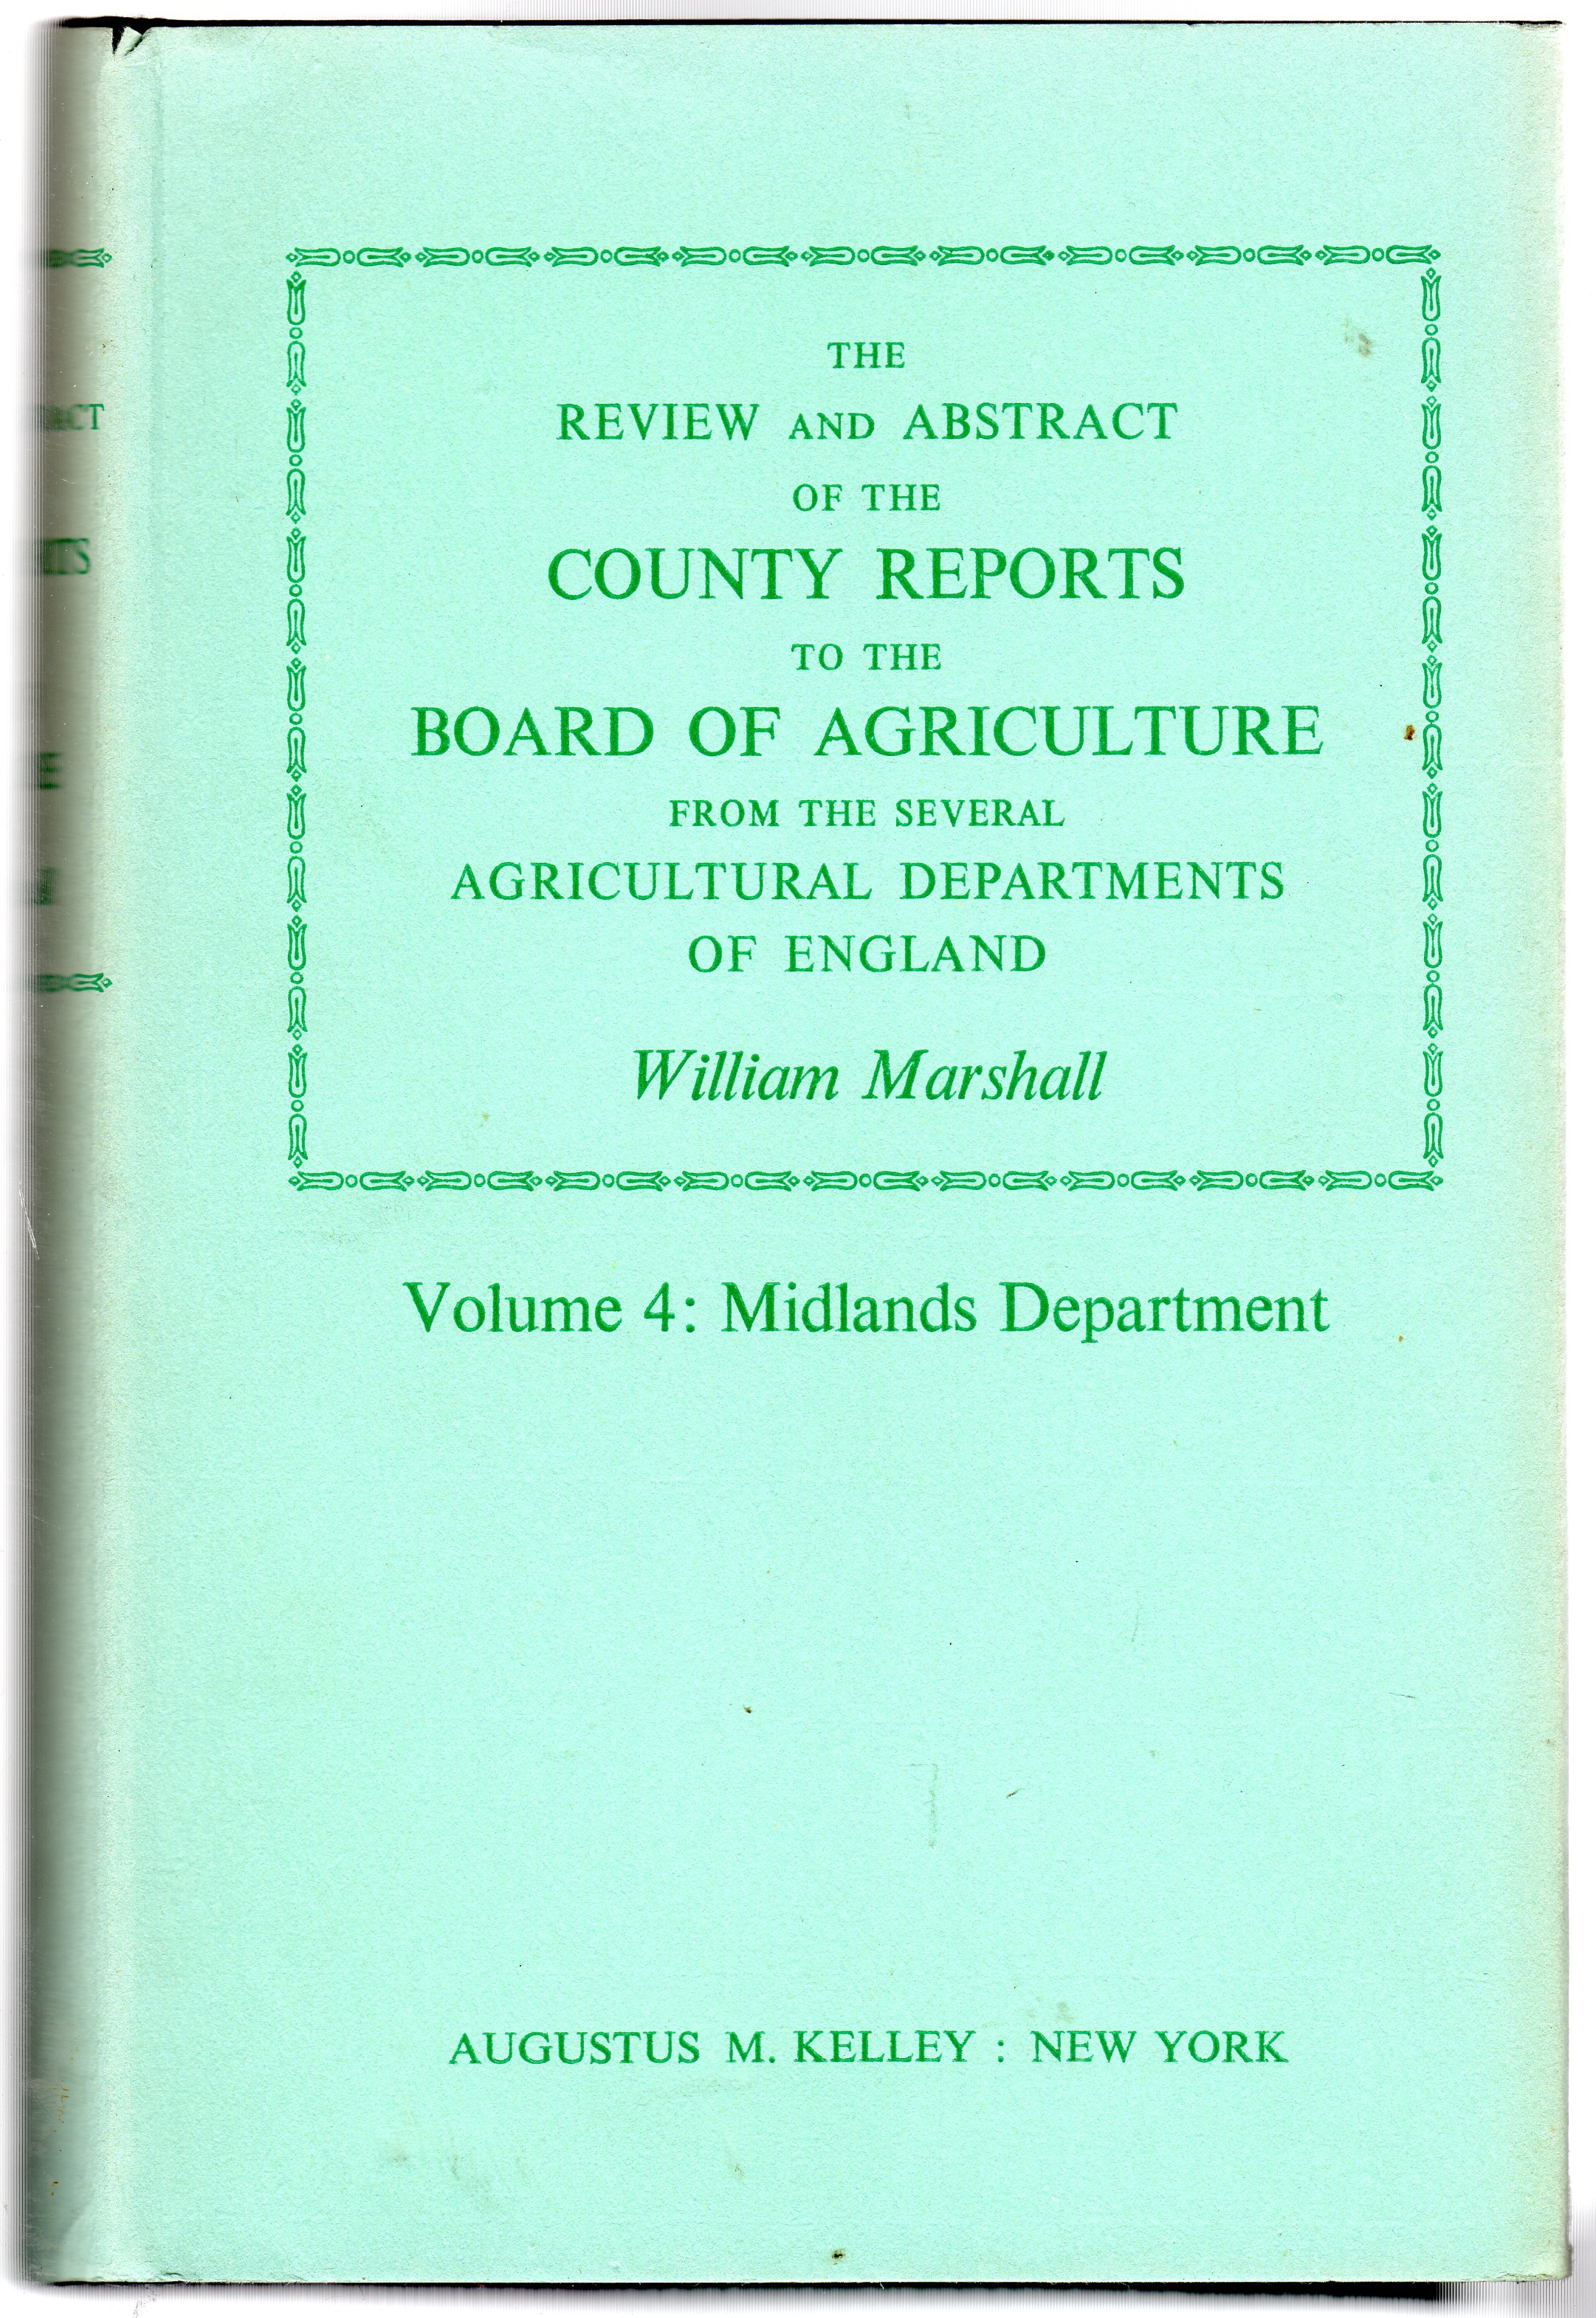 Image for The Review and Abstract of the County Reports to the Board of Agriculture : Volume 4 - Midlands Department